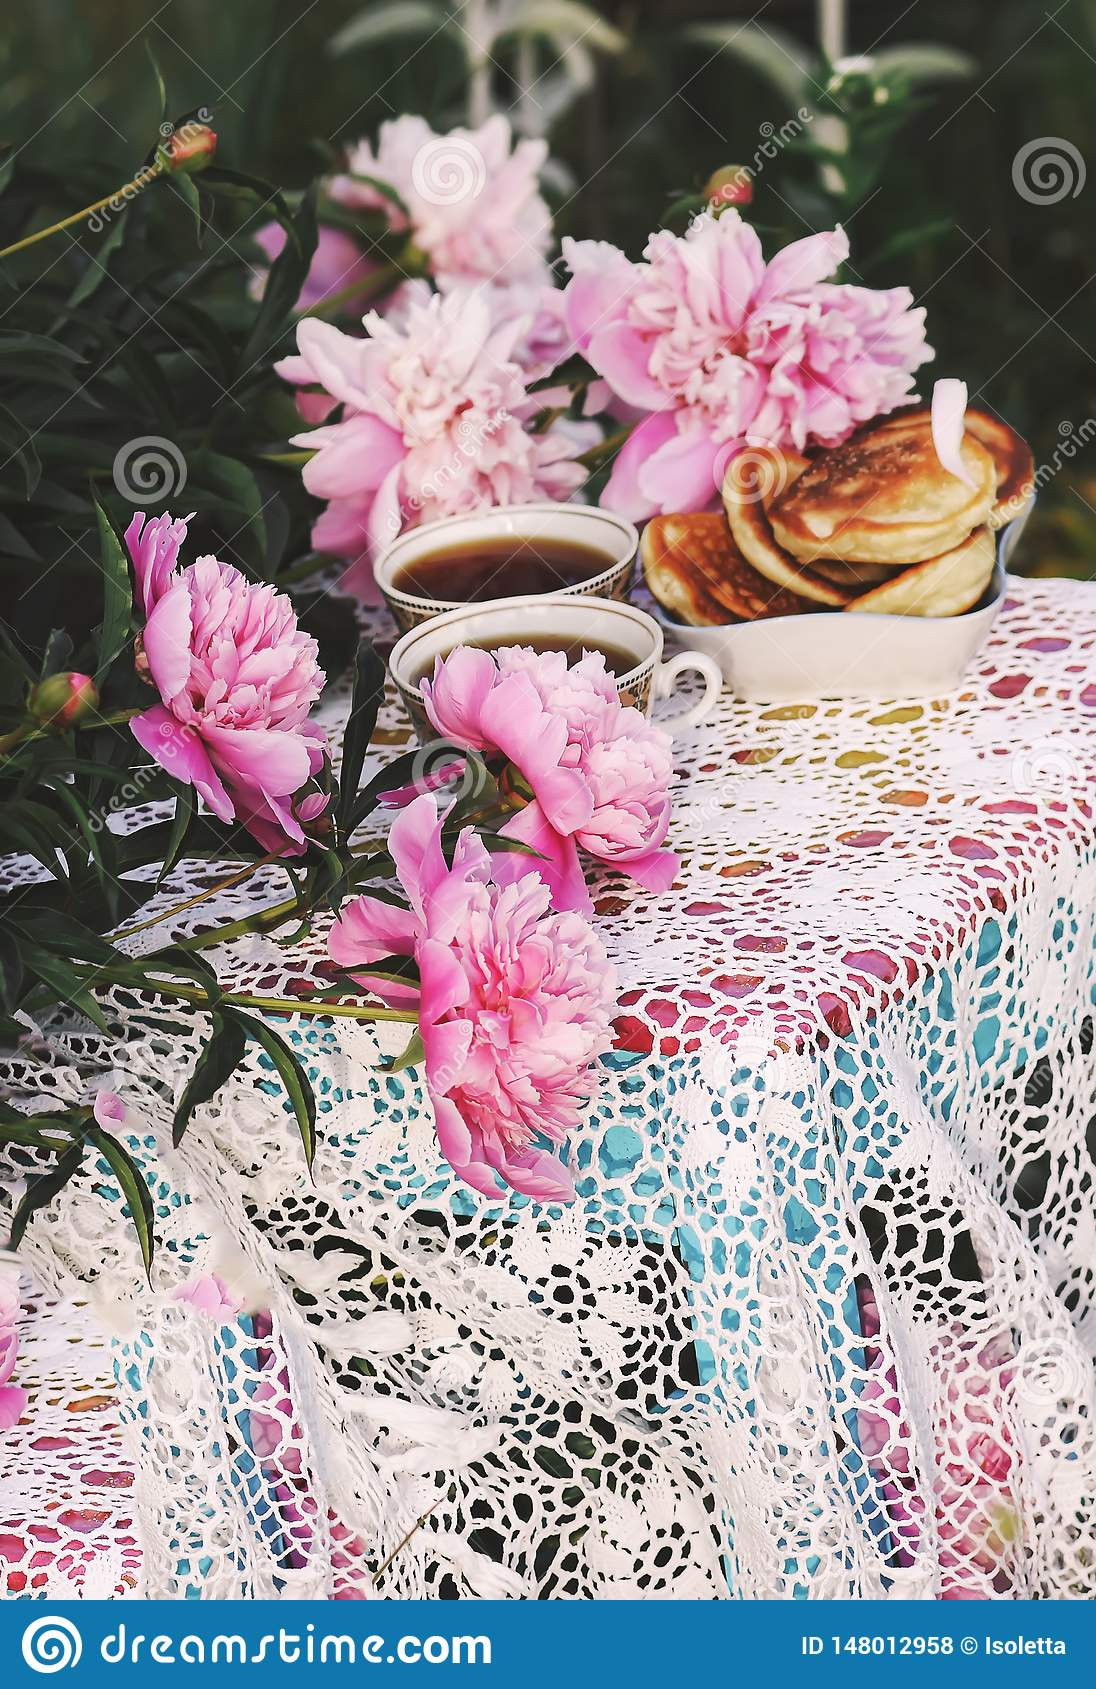 Tea in country style in summer garden. Two cups of black tea and pancakes on handmade crocheted vintage lacy tablecloth and